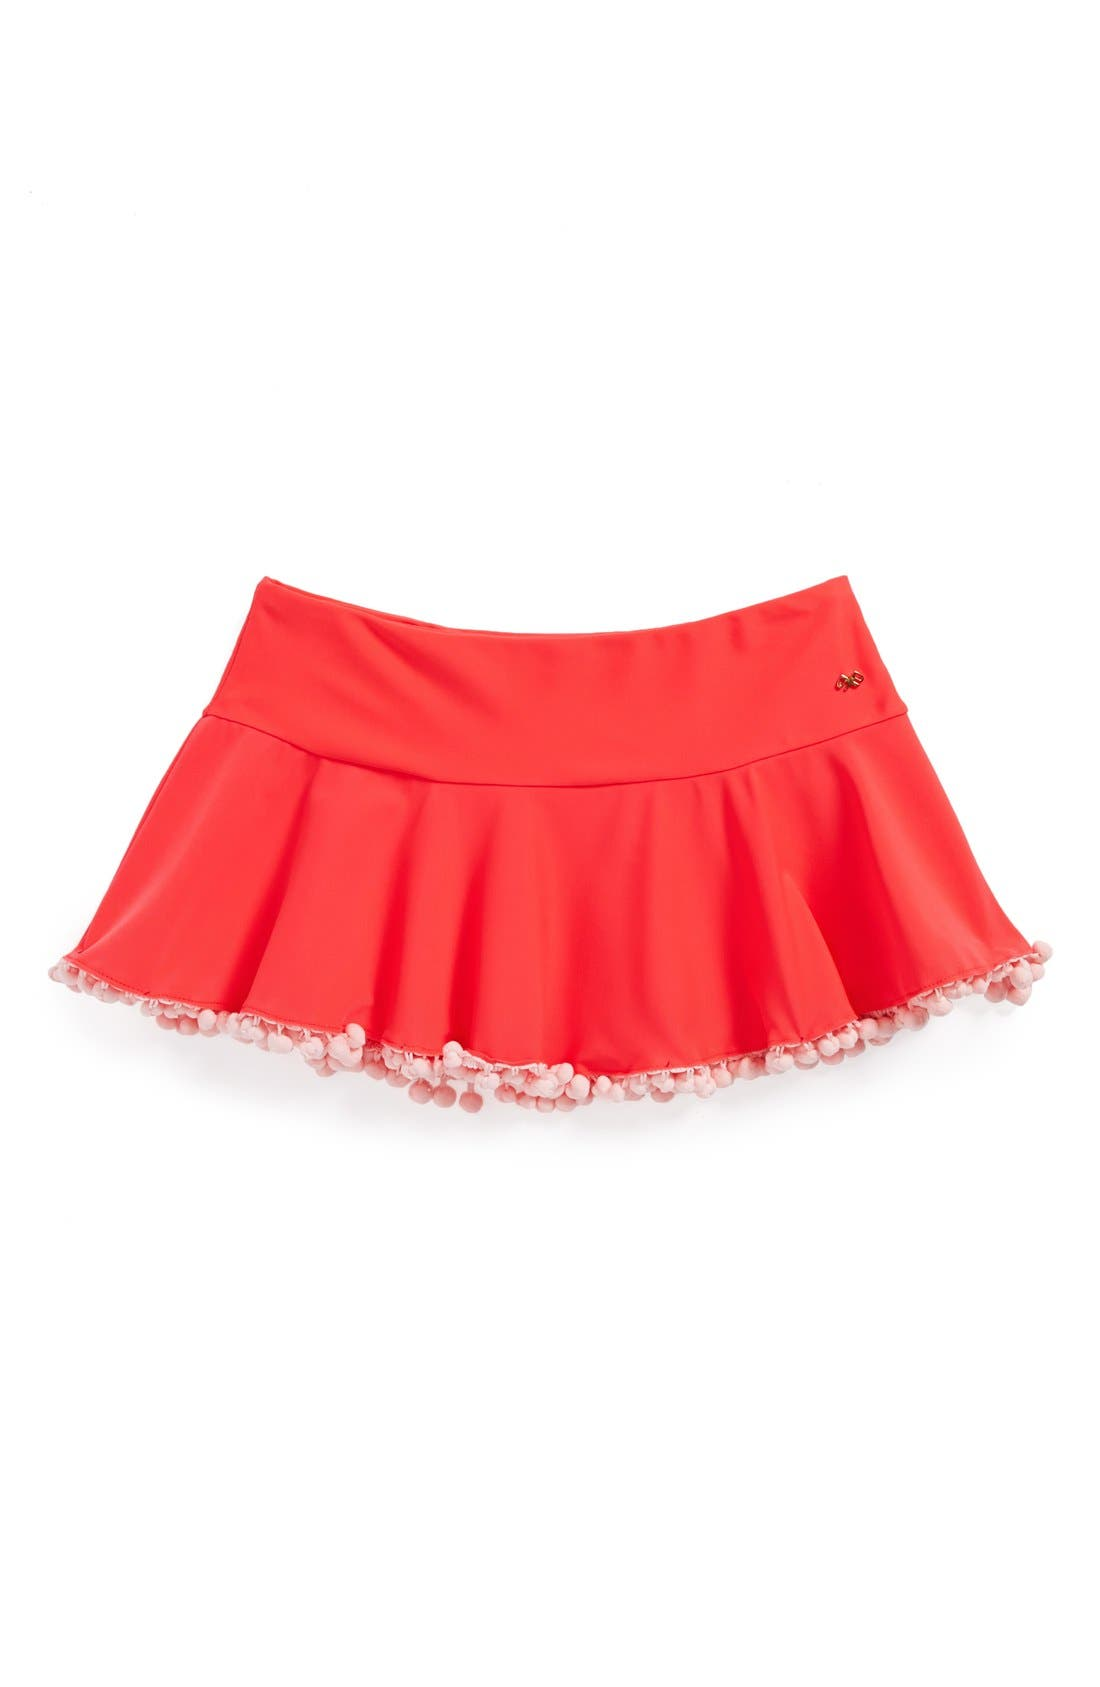 Main Image - PilyQ Cover-Up Skirt (Little Girls & Big Girls)